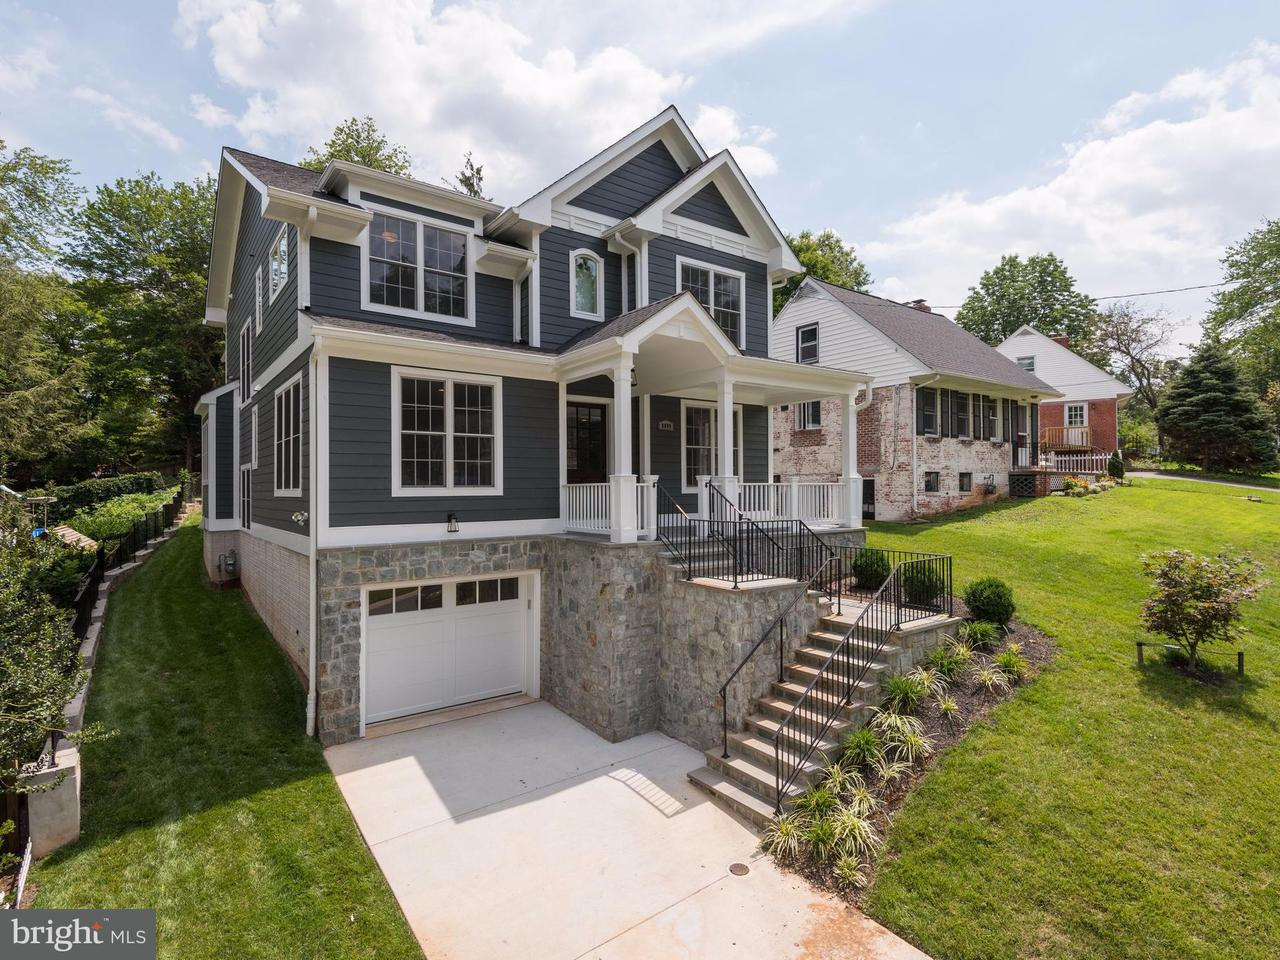 Single Family Home for Sale at 8809 MELWOOD Road 8809 MELWOOD Road Bethesda, Maryland 20817 United States